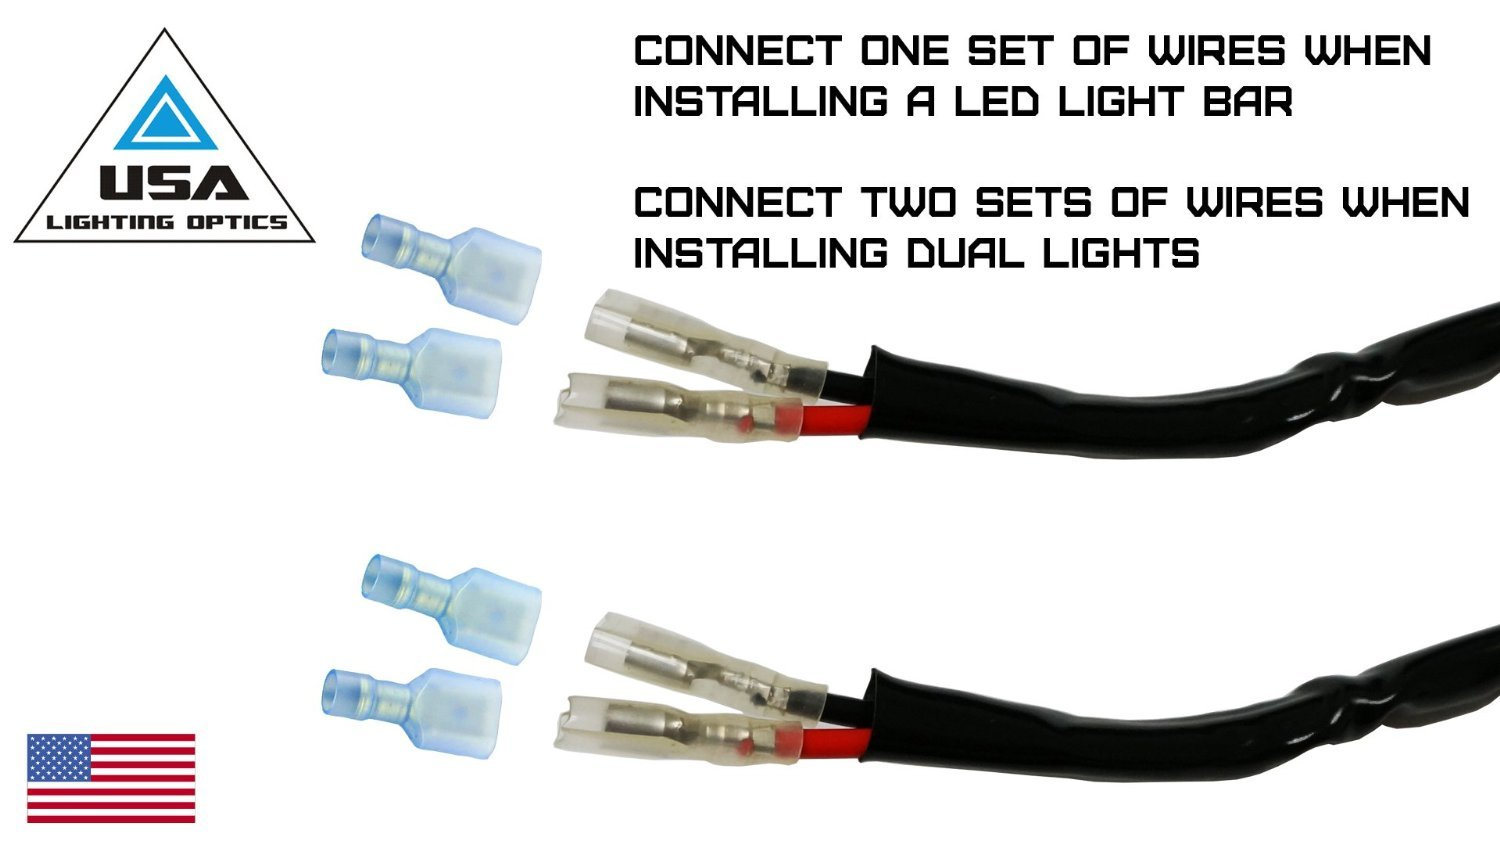 1 Fog Light 40 Amp Universal Wiring Harness On The Diy Dual Pump Kit Market Comes W Relay Off Switch Connectors Great For Led Work Lights Atv